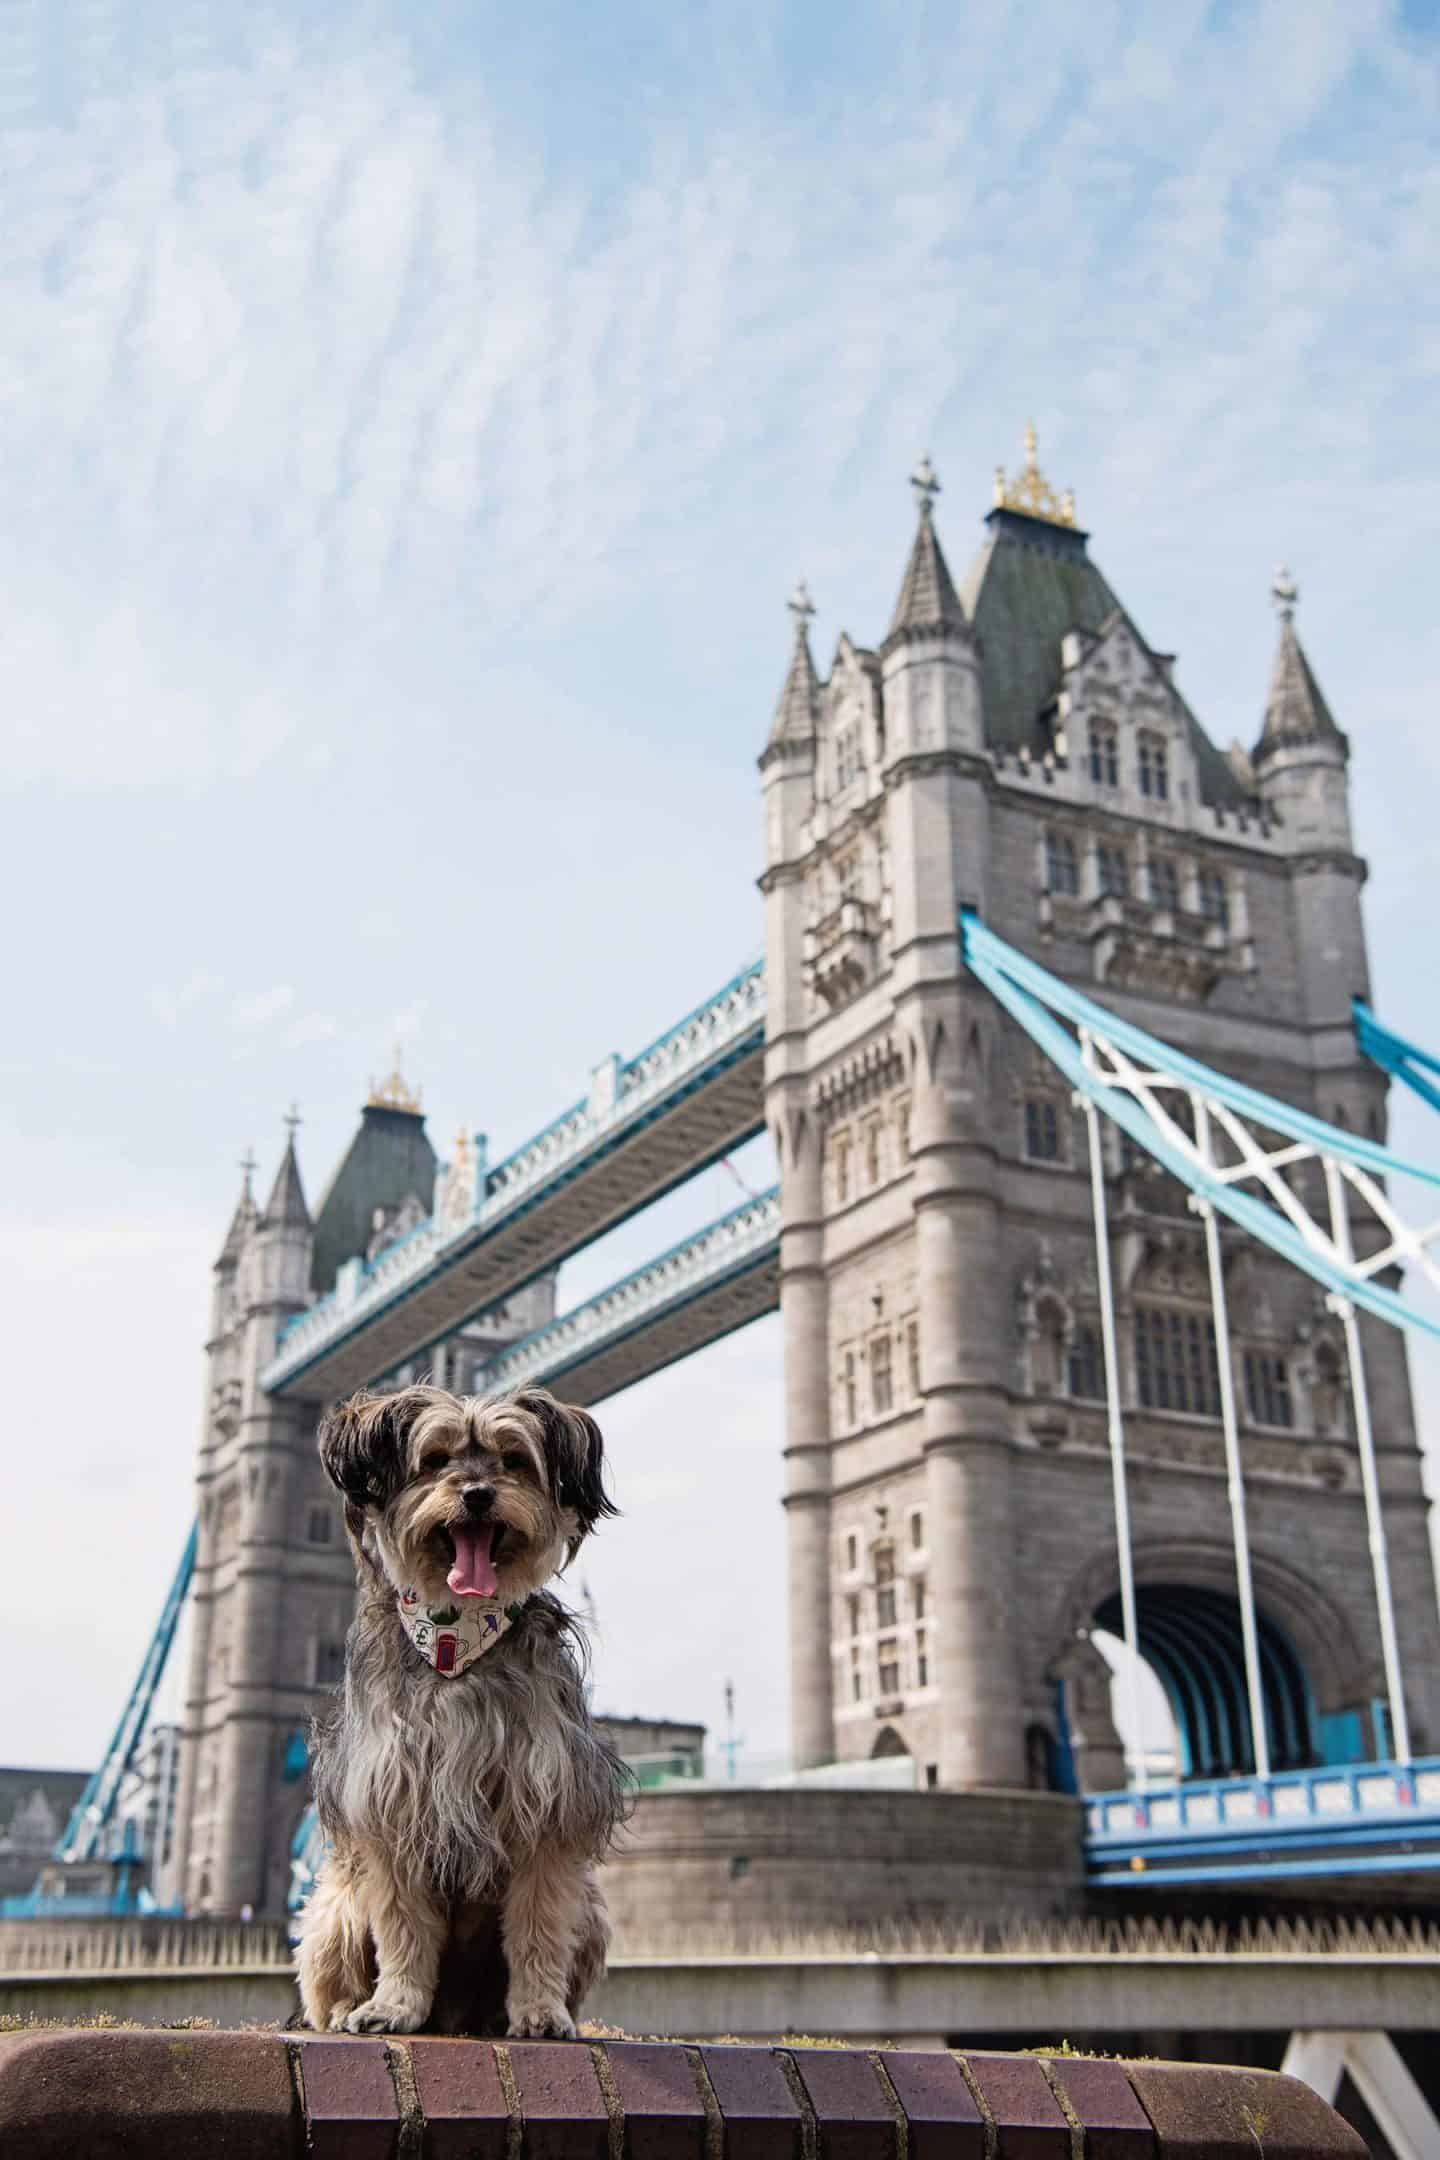 Dog-friendly London | The Best Dog-friendly Things To Do in London - Tower Bridge